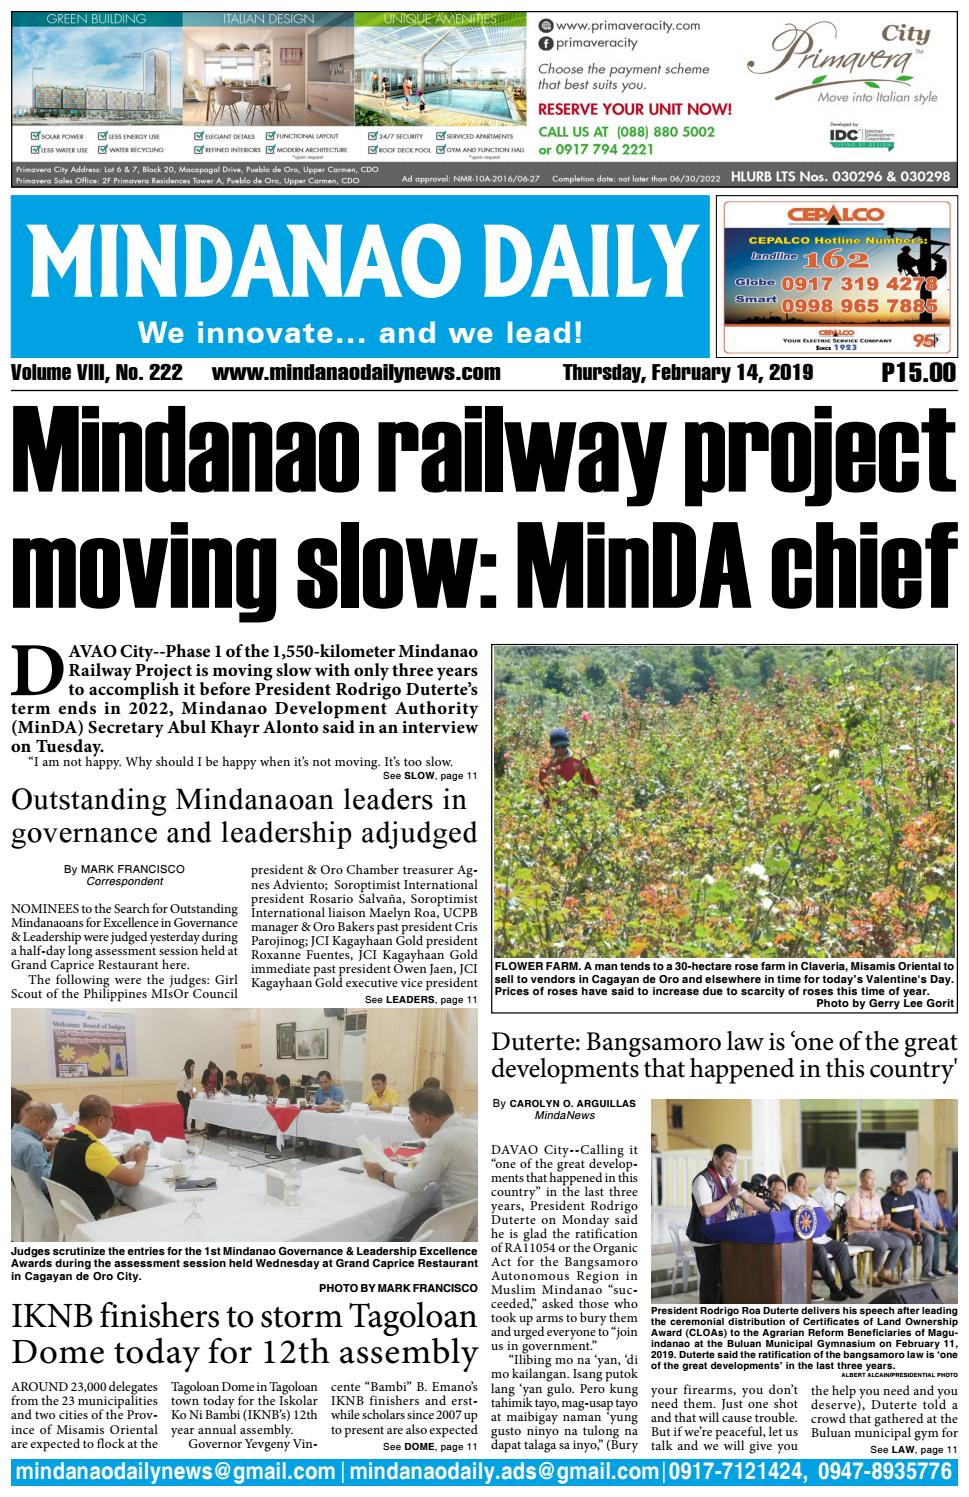 Mindanao Daily (February 14, 2019) by Mindanao Daily News - issuu